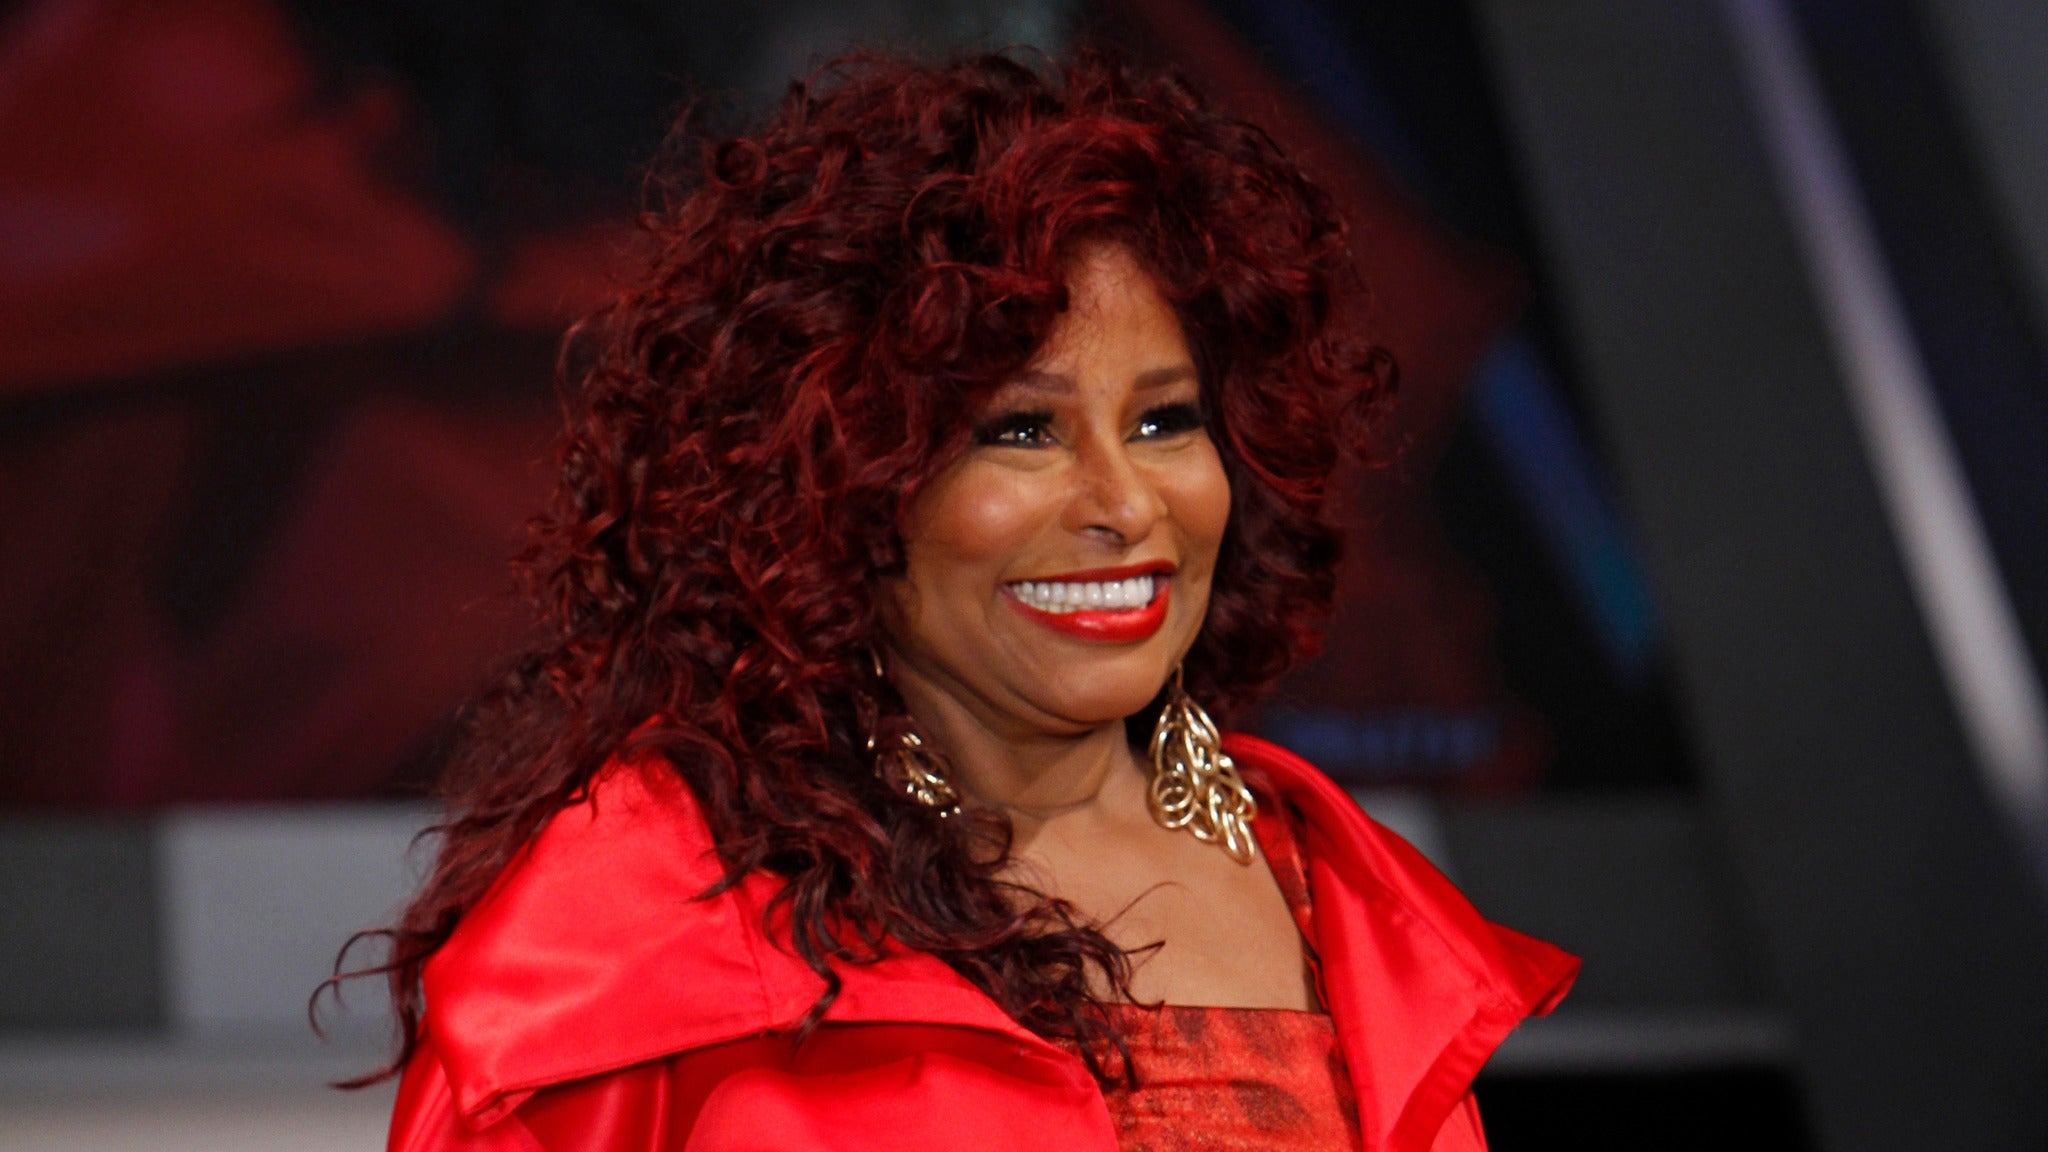 Chaka Khan at the Beau Rivage Theatre at Beau Rivage Theatre